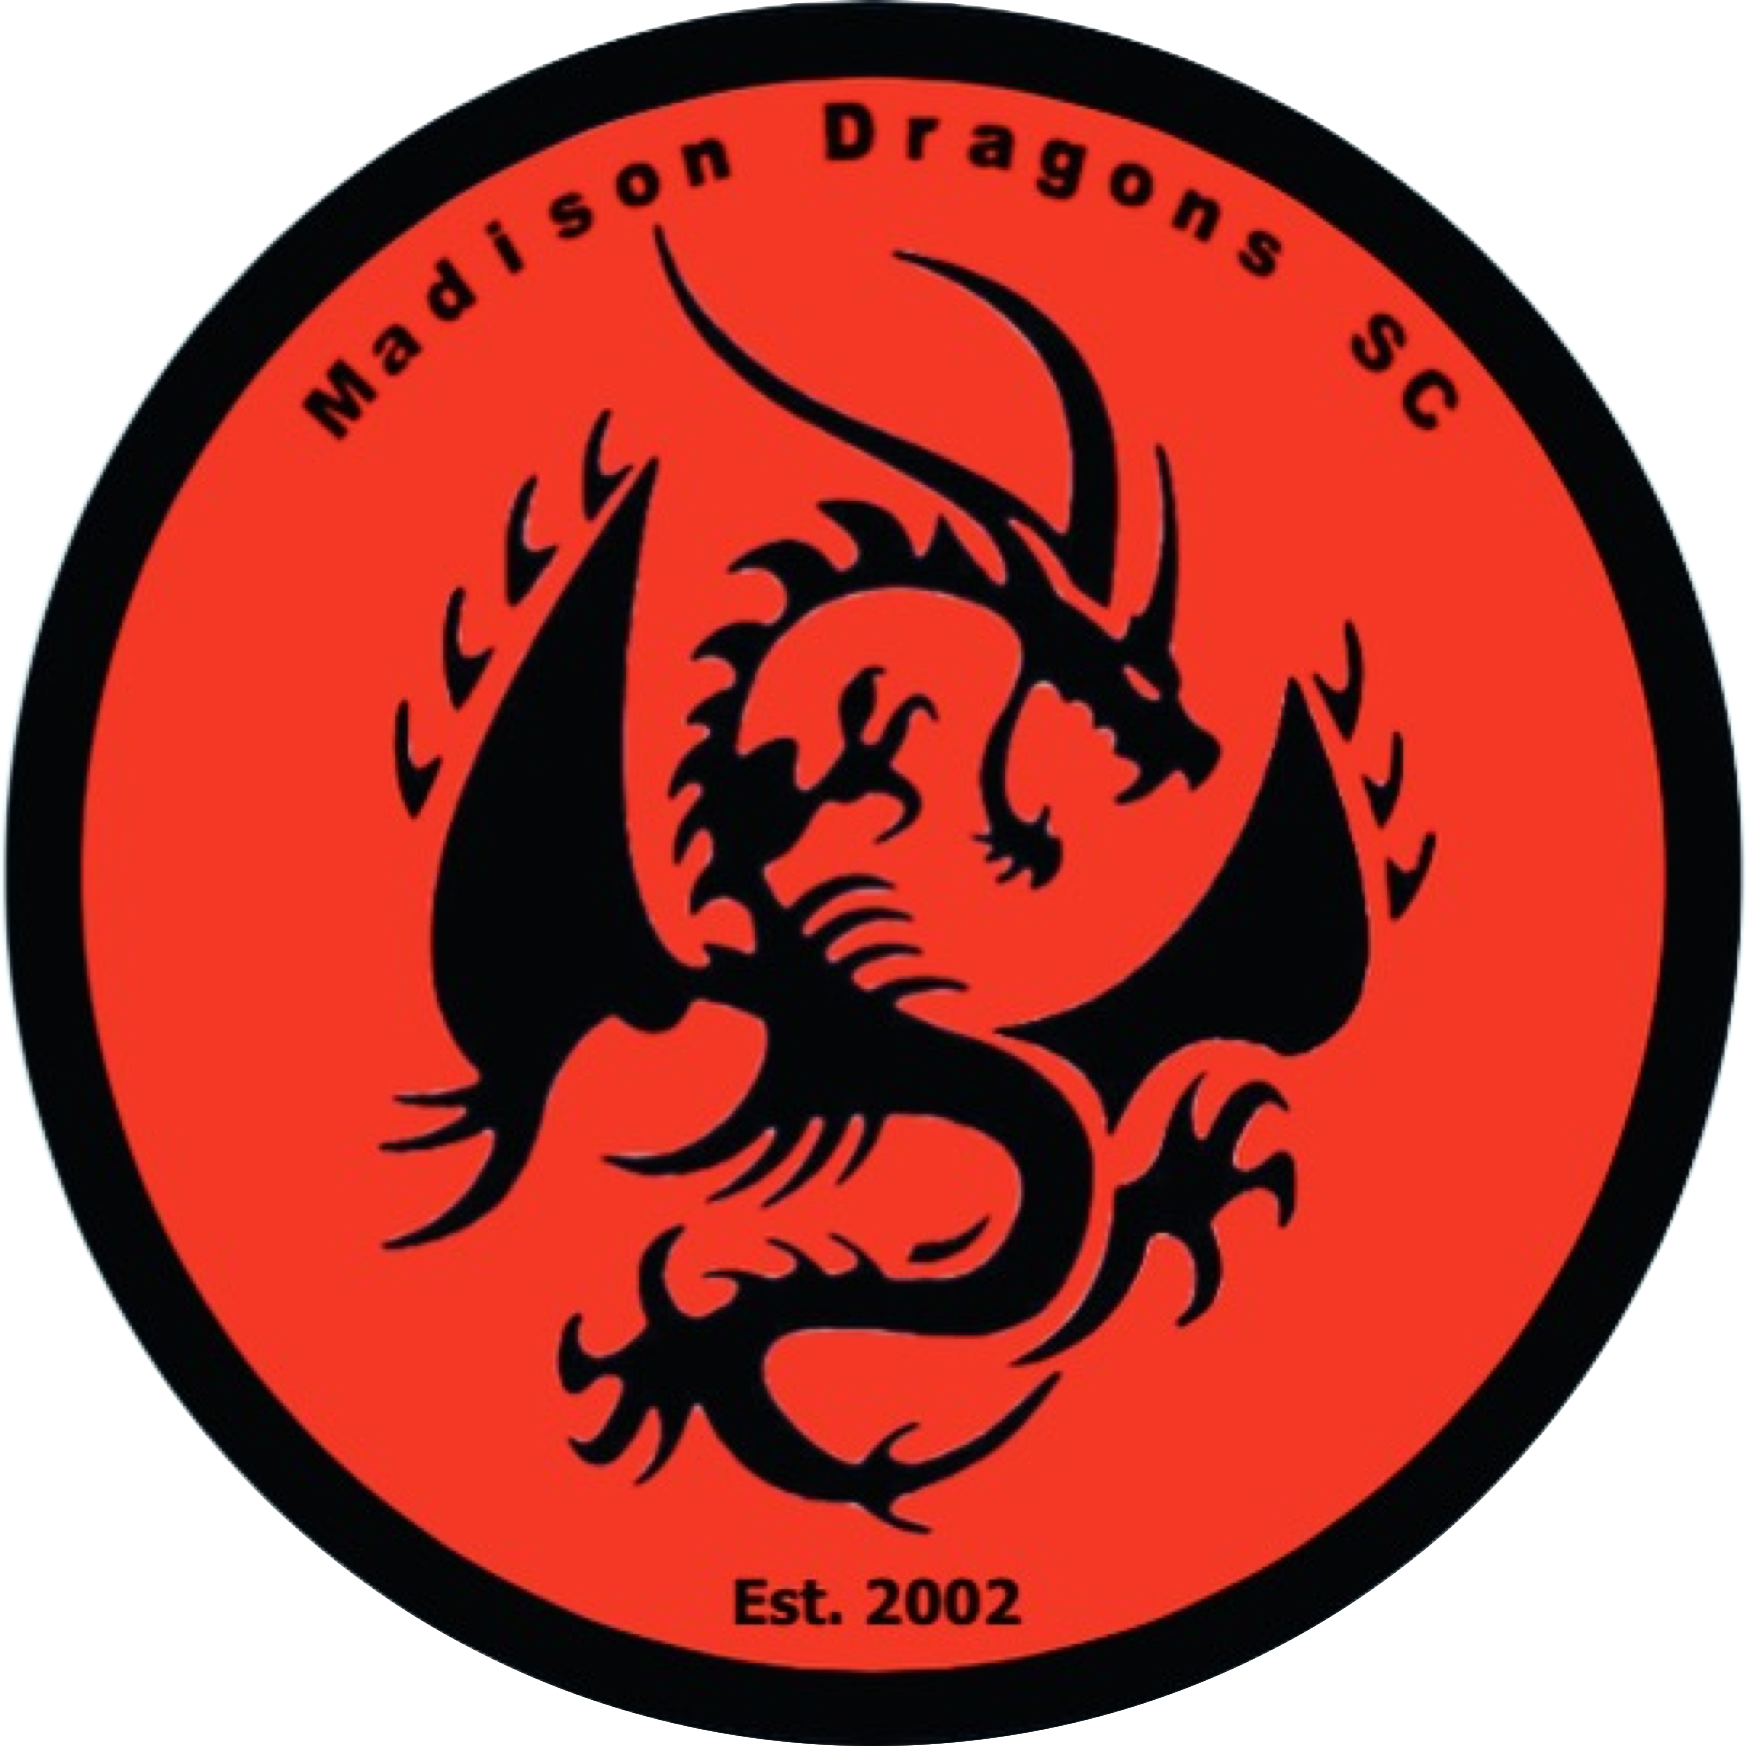 Madison Dragons Men